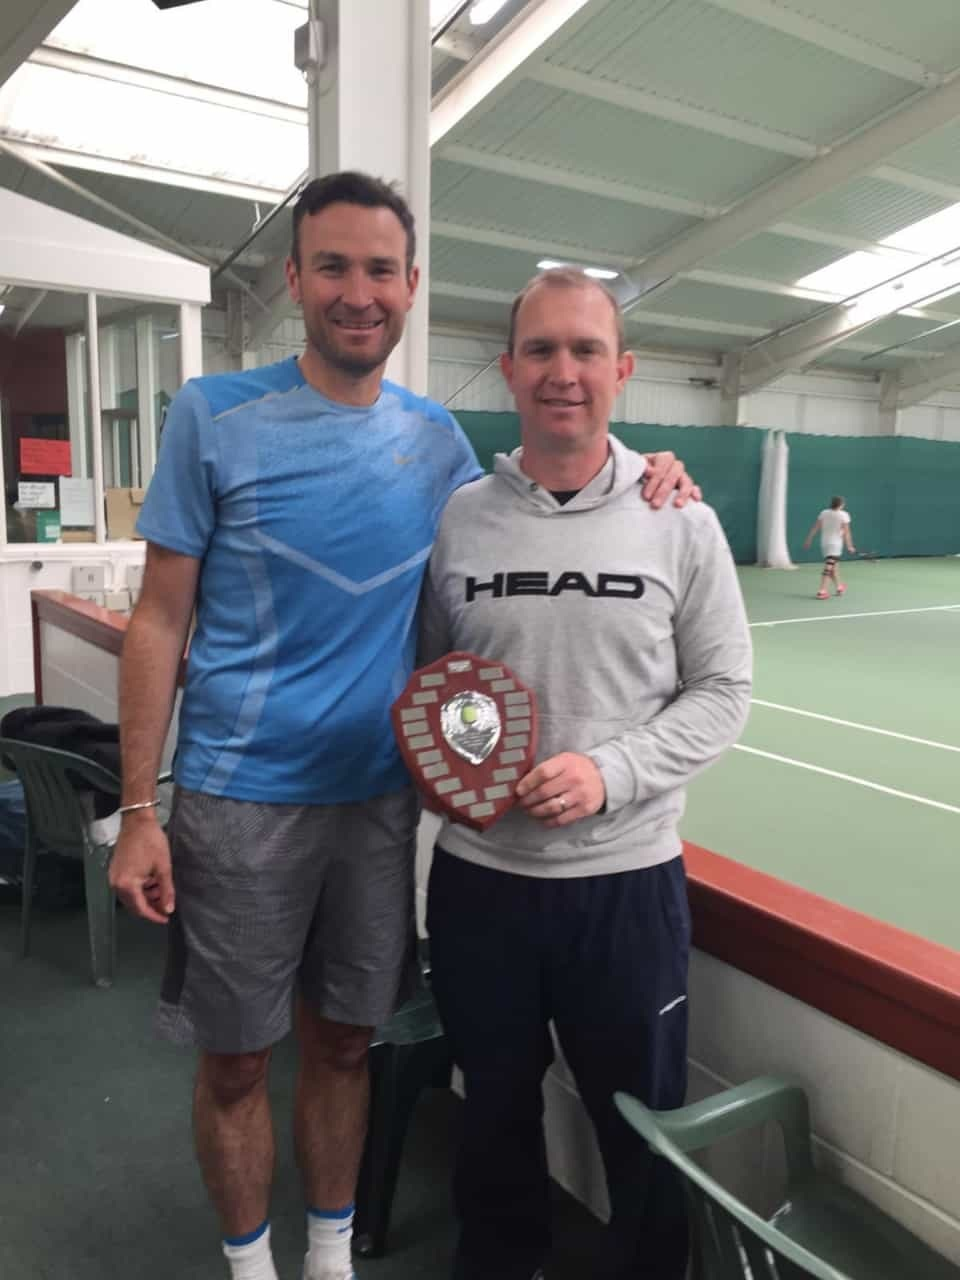 County senior doubles champions Paul Burgess and Chris Marlow from Manor Park. Picture: JANE POYNDER